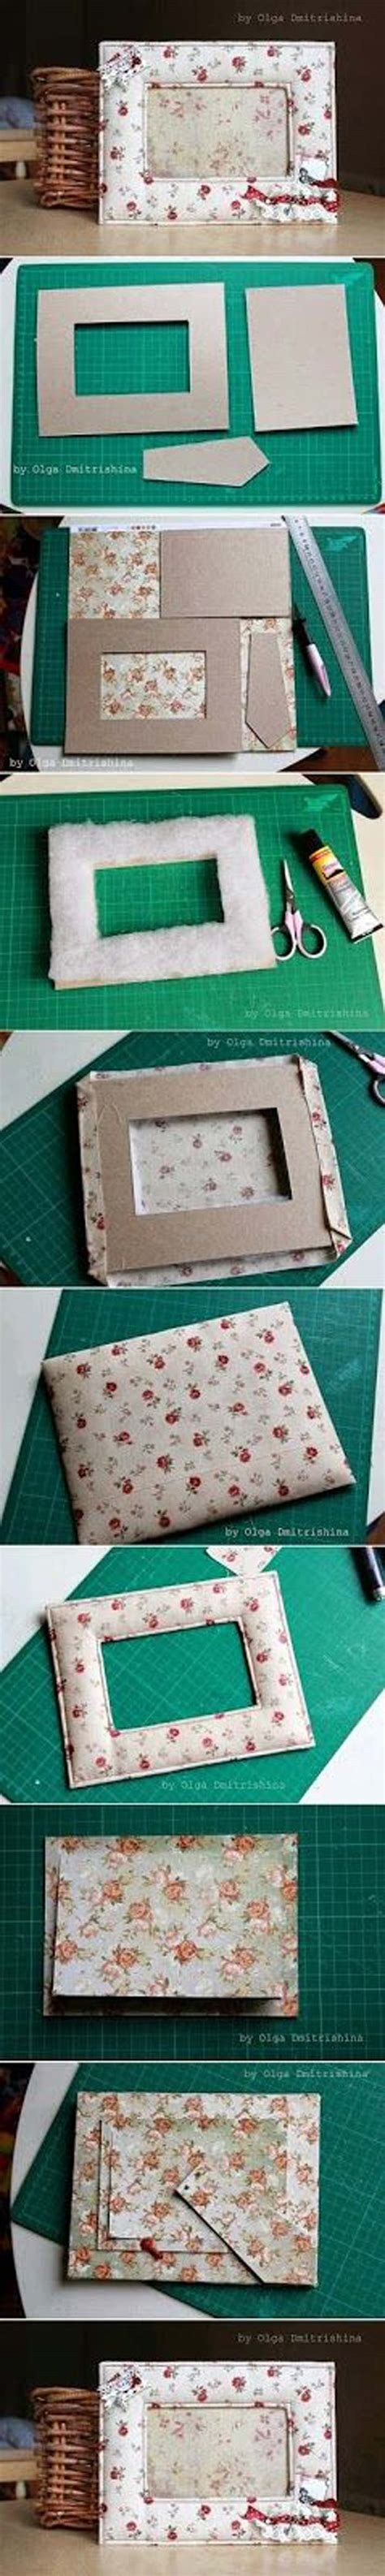 diy projects picture frames 31 cool and crafty diy picture frames diy projects for